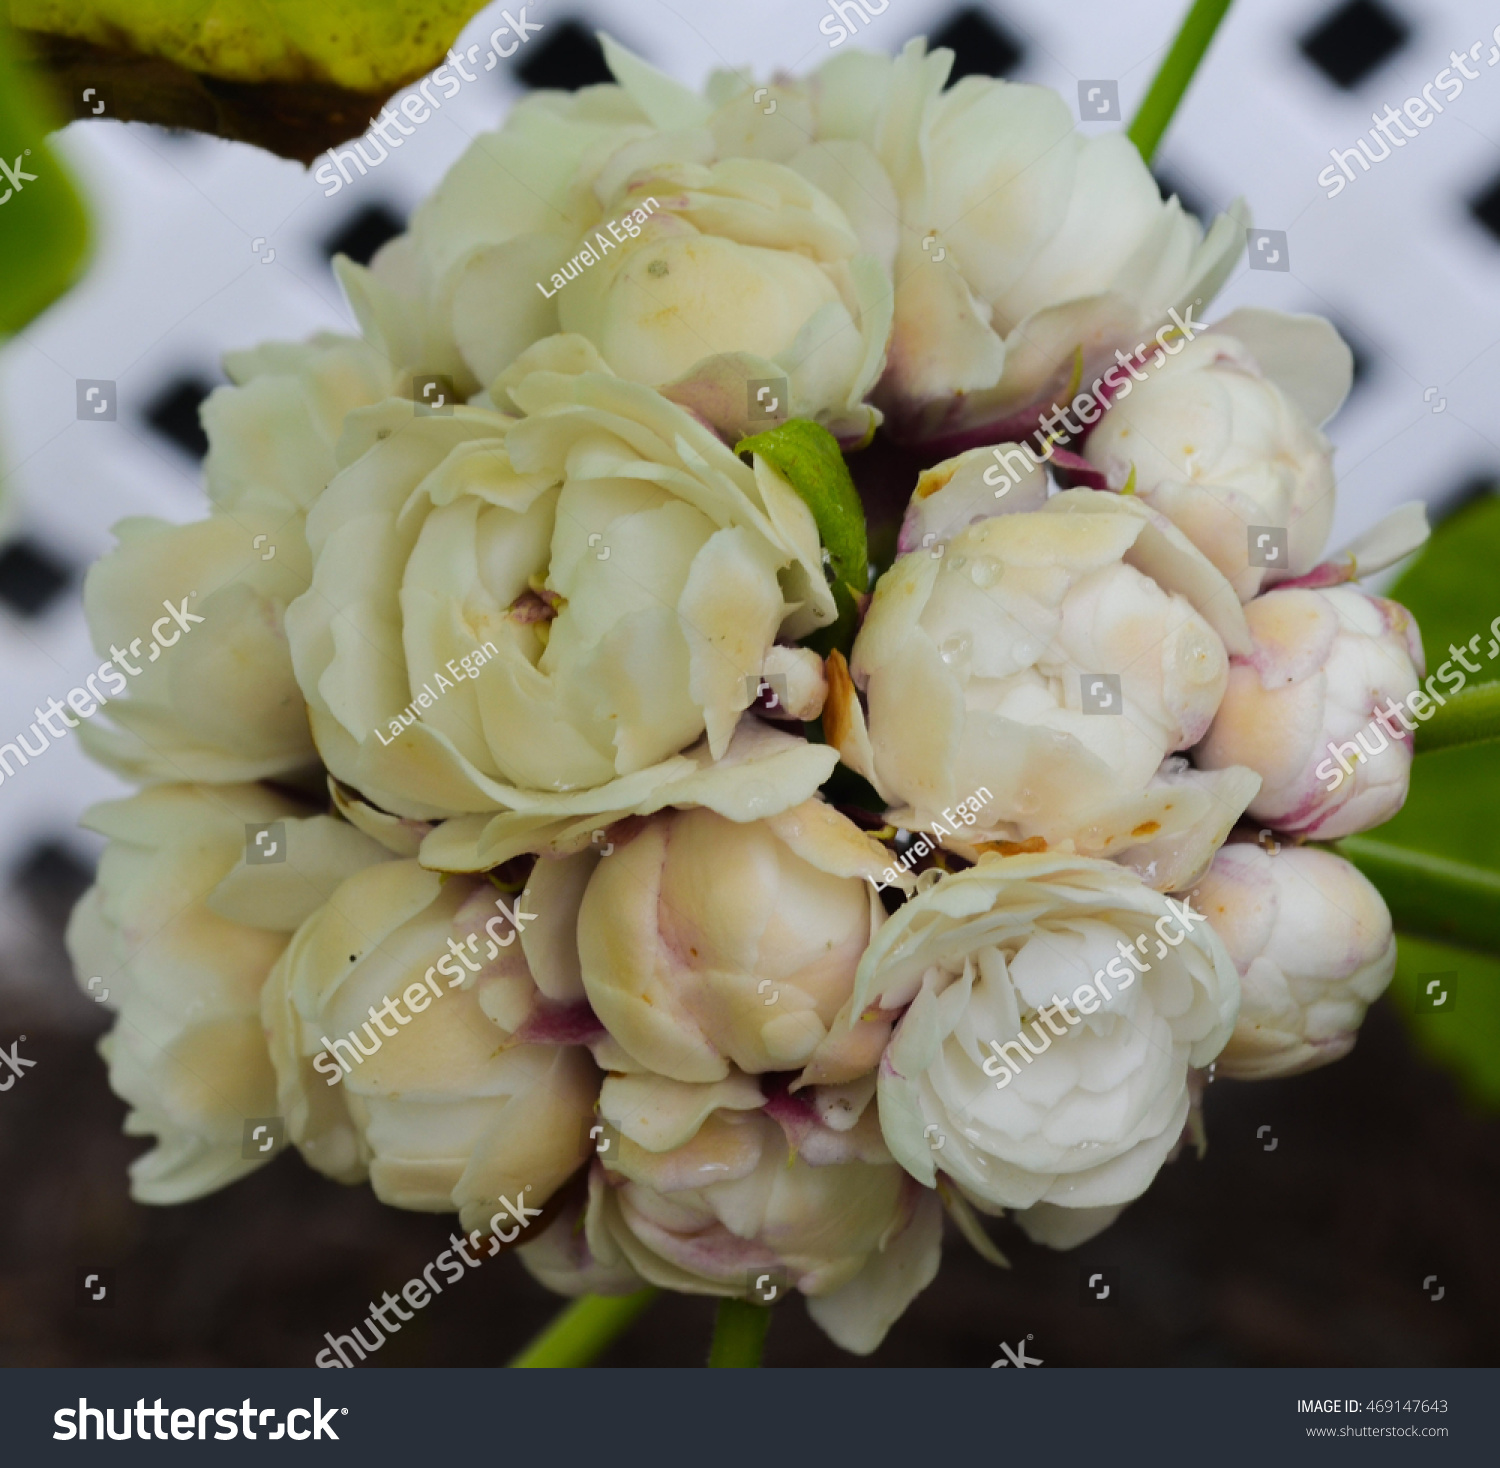 Cashmere Bouquet Stock Photo (Royalty Free) 469147643 - Shutterstock